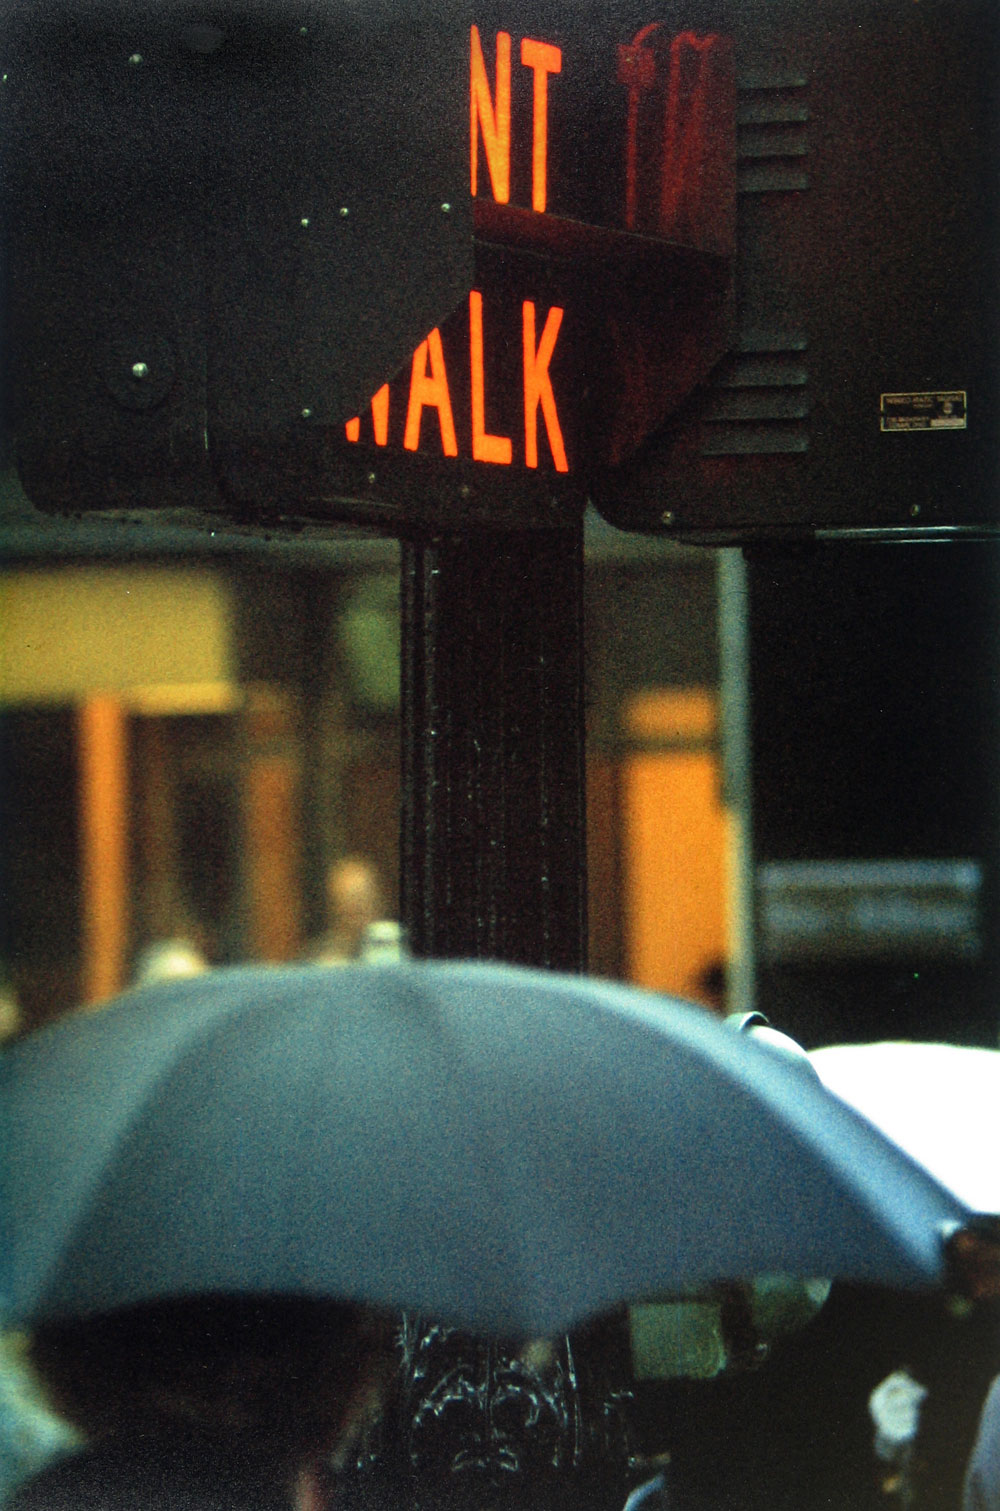 LEITER_1952_Don-t_Walk_small.jpg